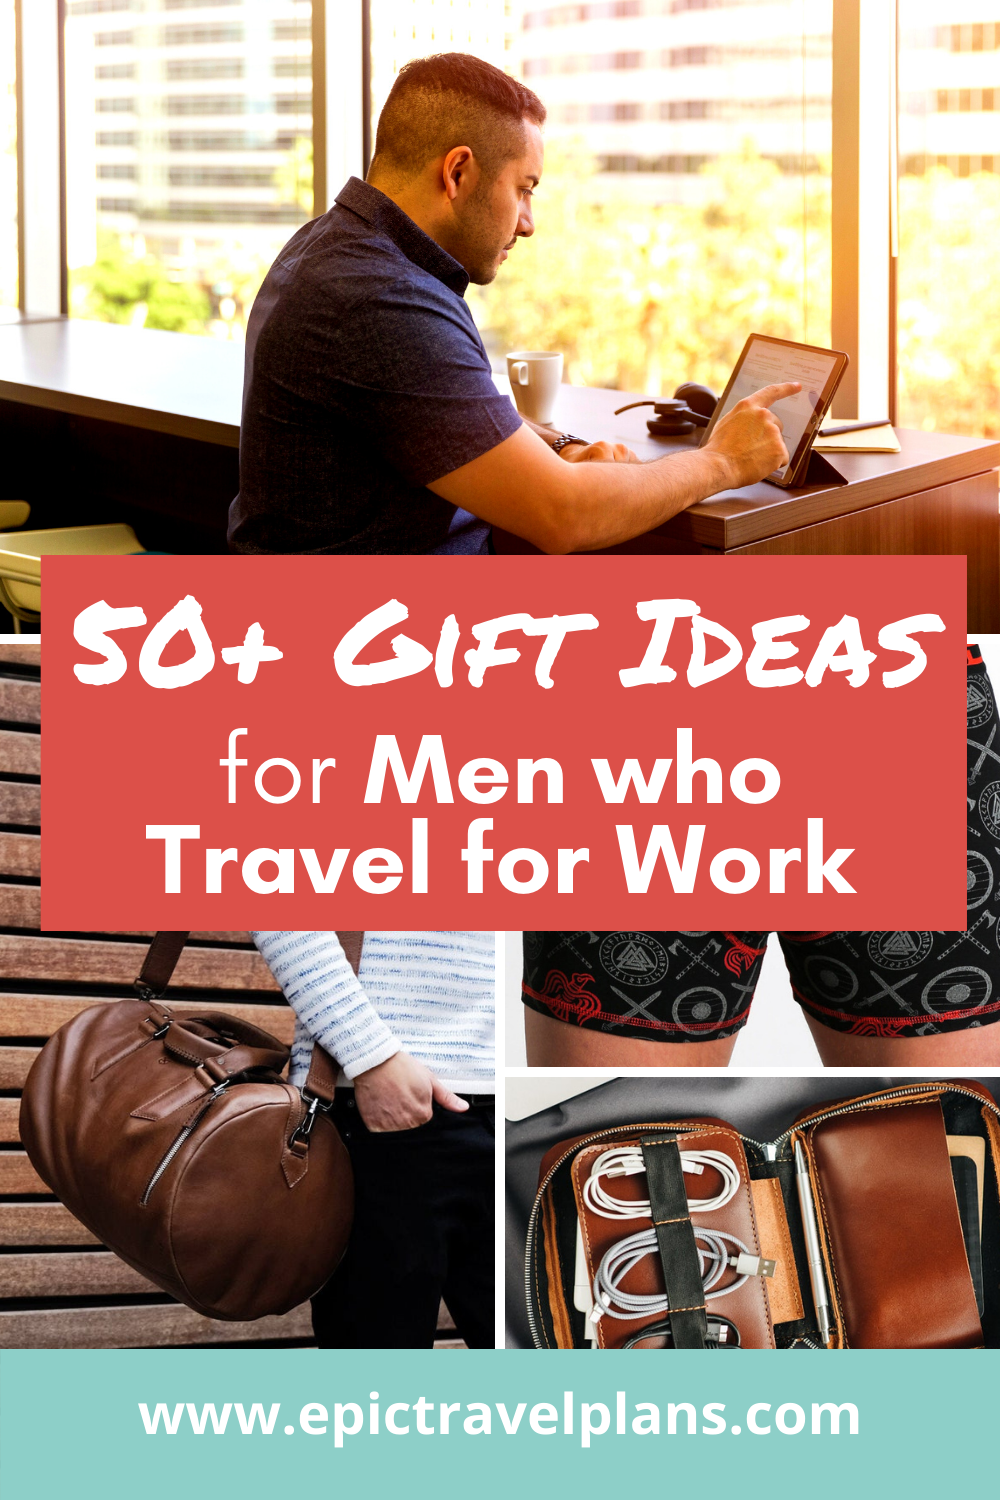 Best gift ideas for men who travel for work, business travel gifts for him